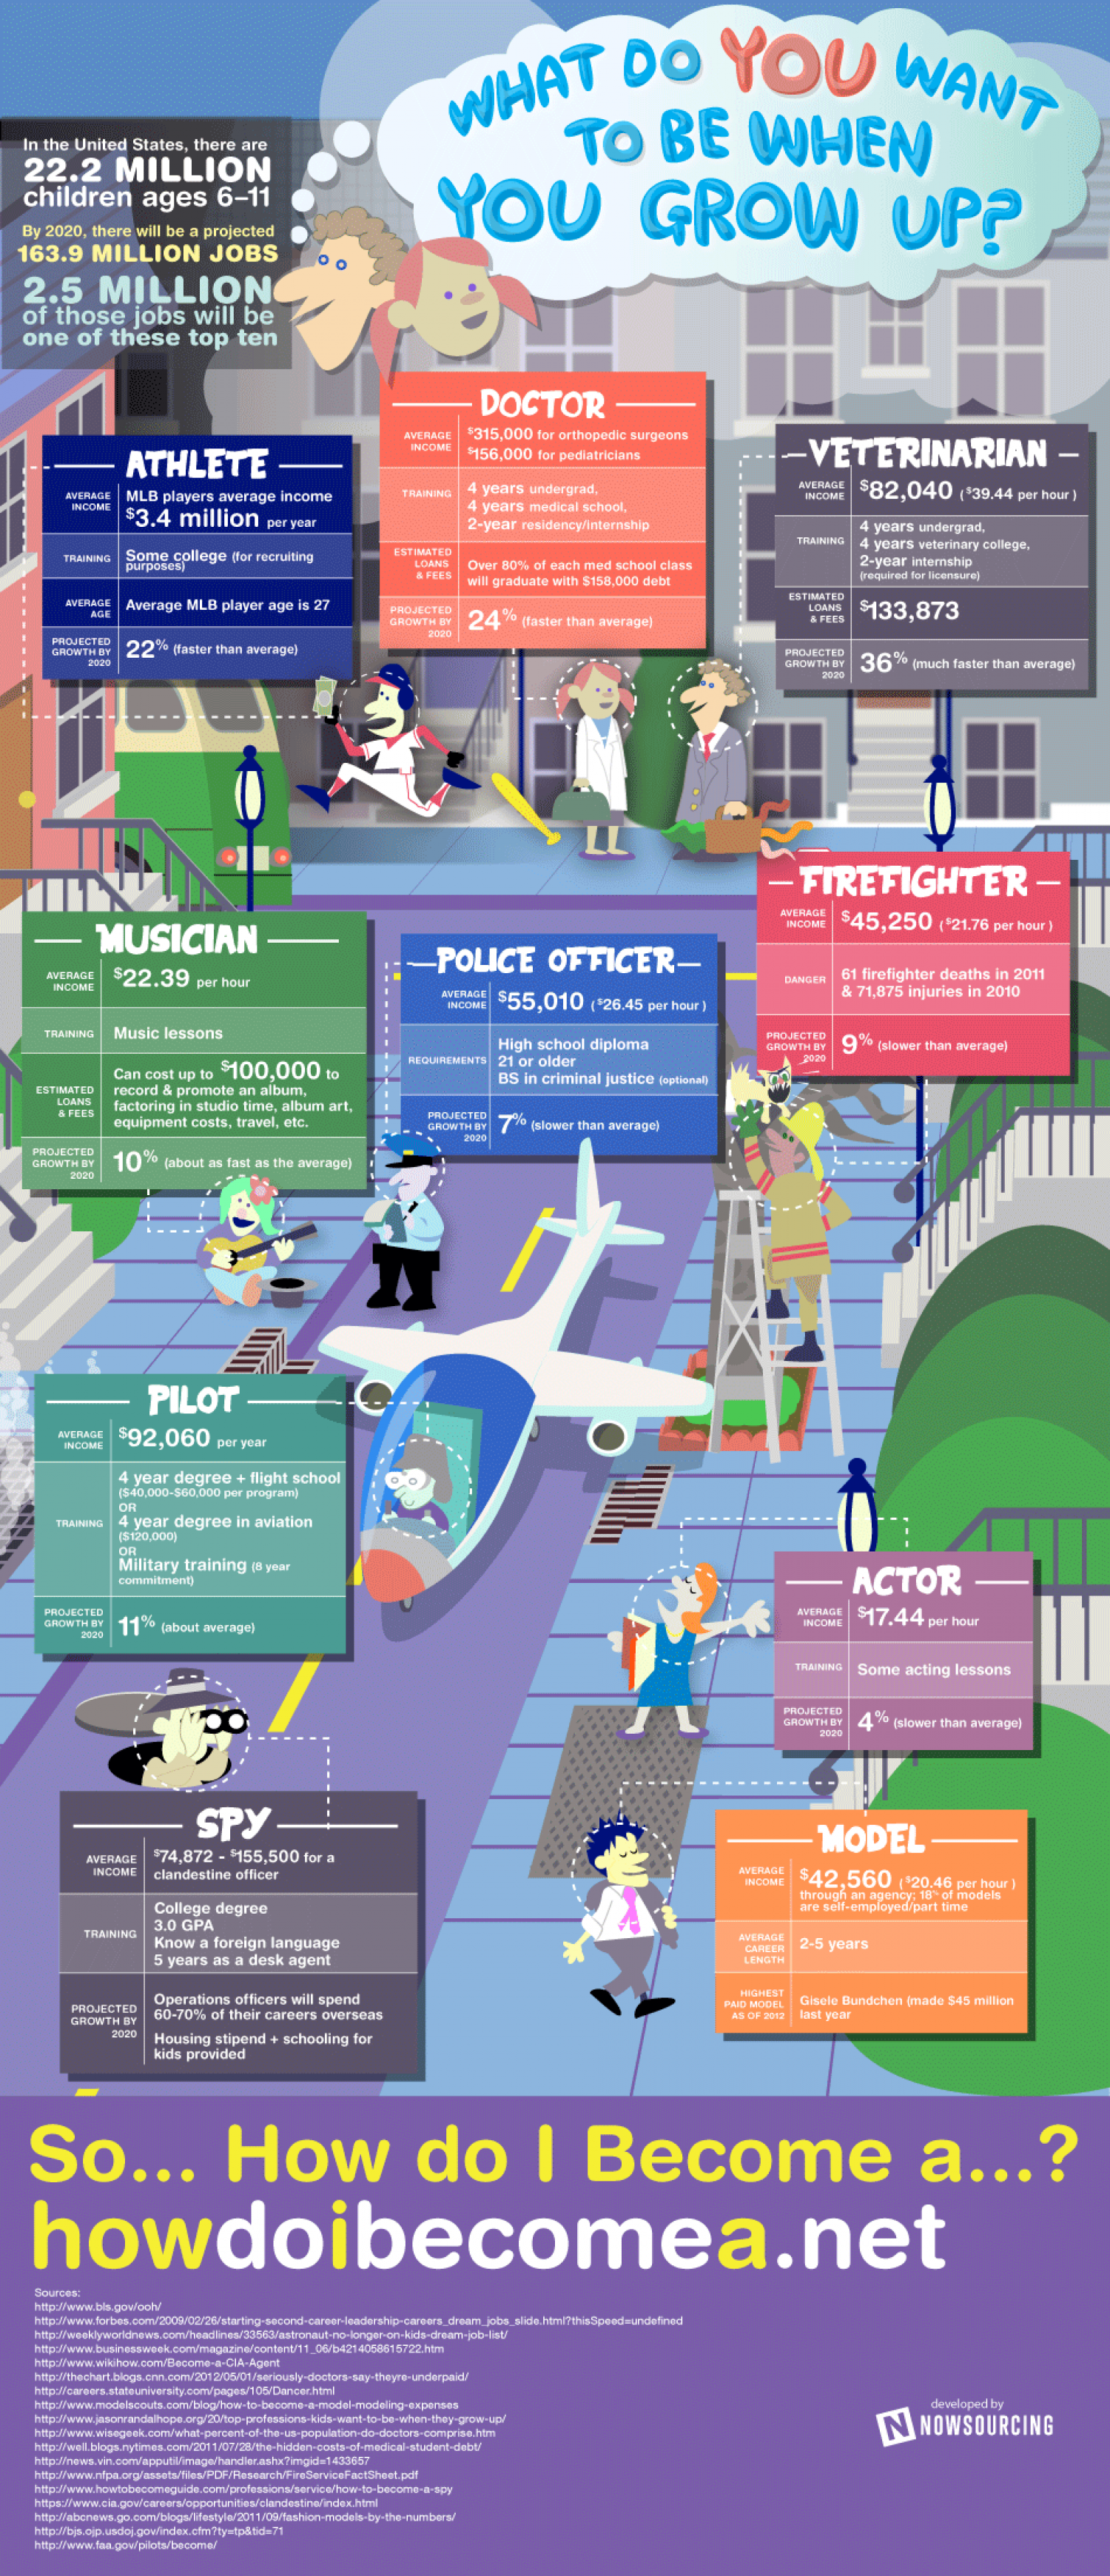 What Do You Want To Be When You Grow Up? Infographic